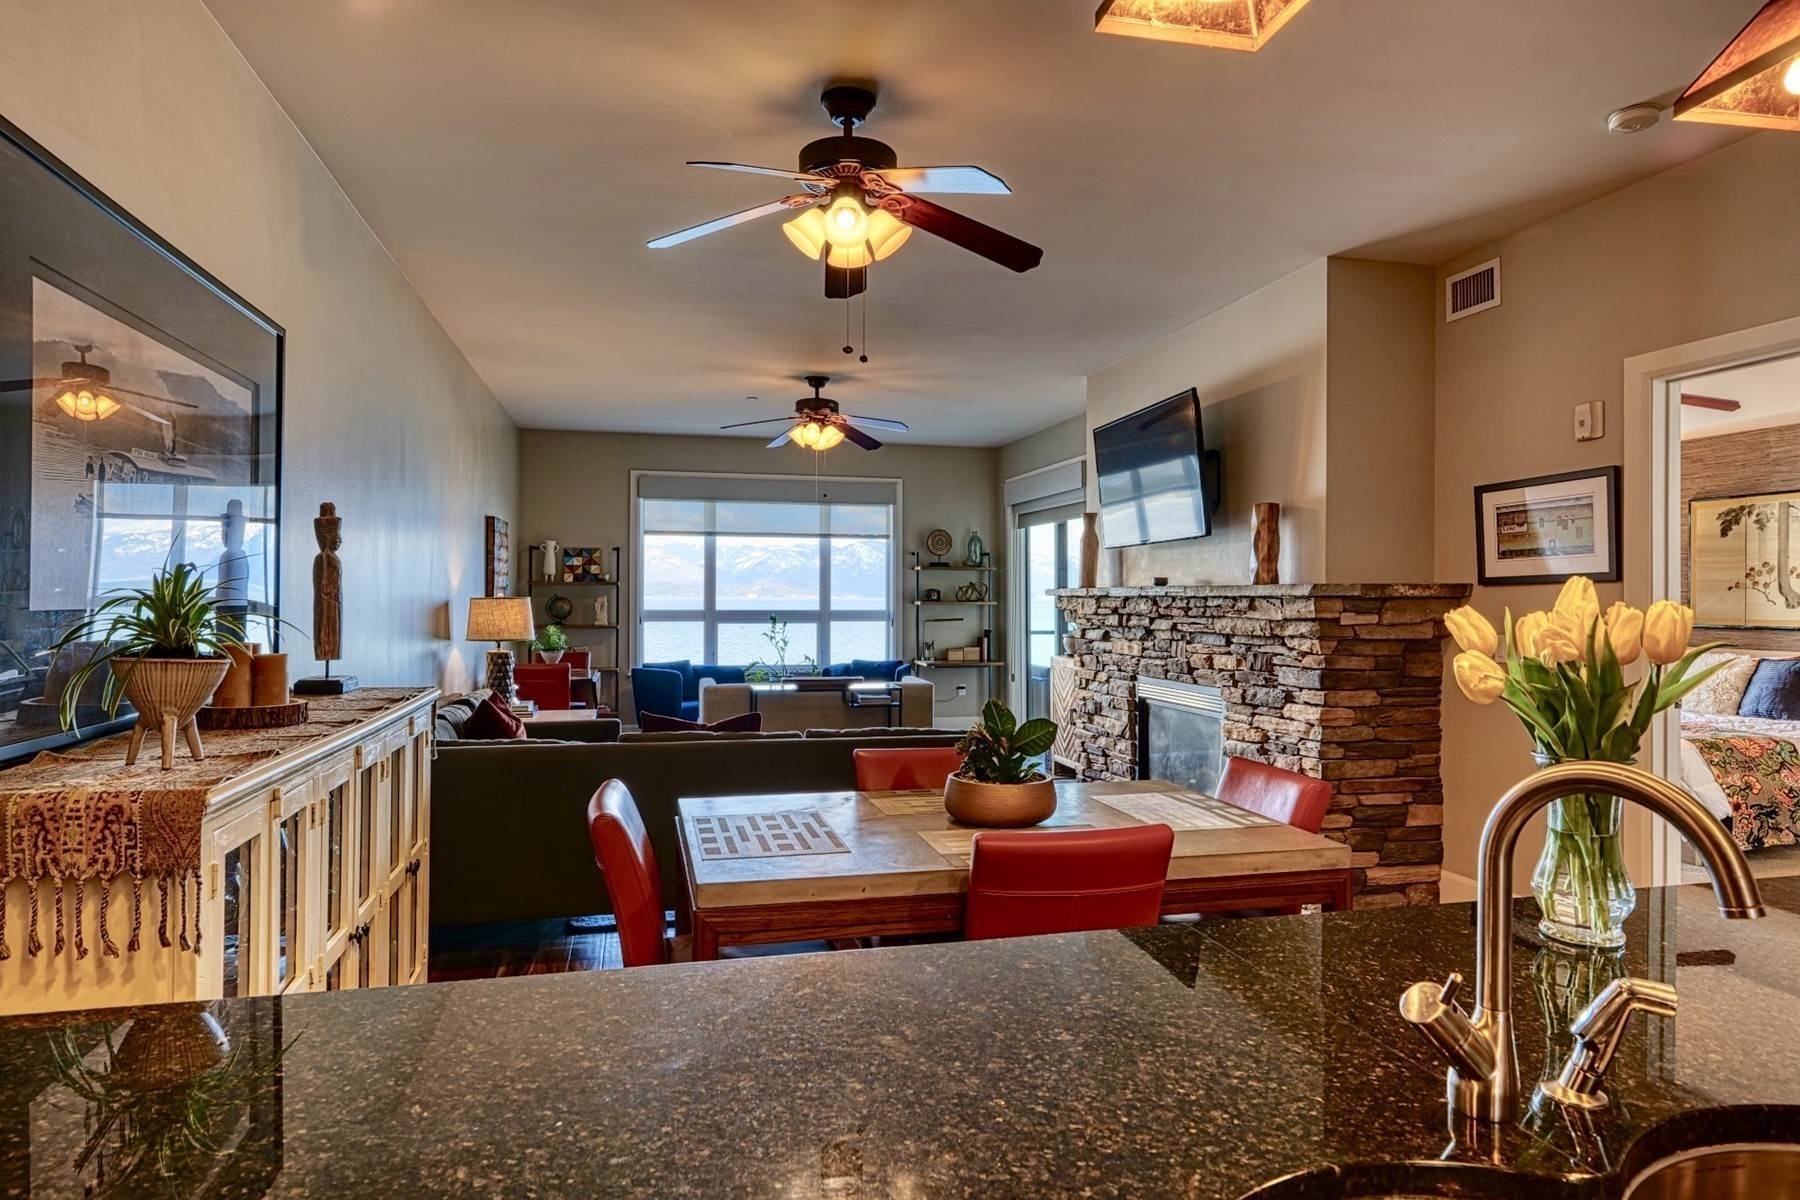 Condominiums for Sale at Seasons Condo Unit # 7108 702 Sandpoint Ave, Unit #7108 Sandpoint, Idaho 83864